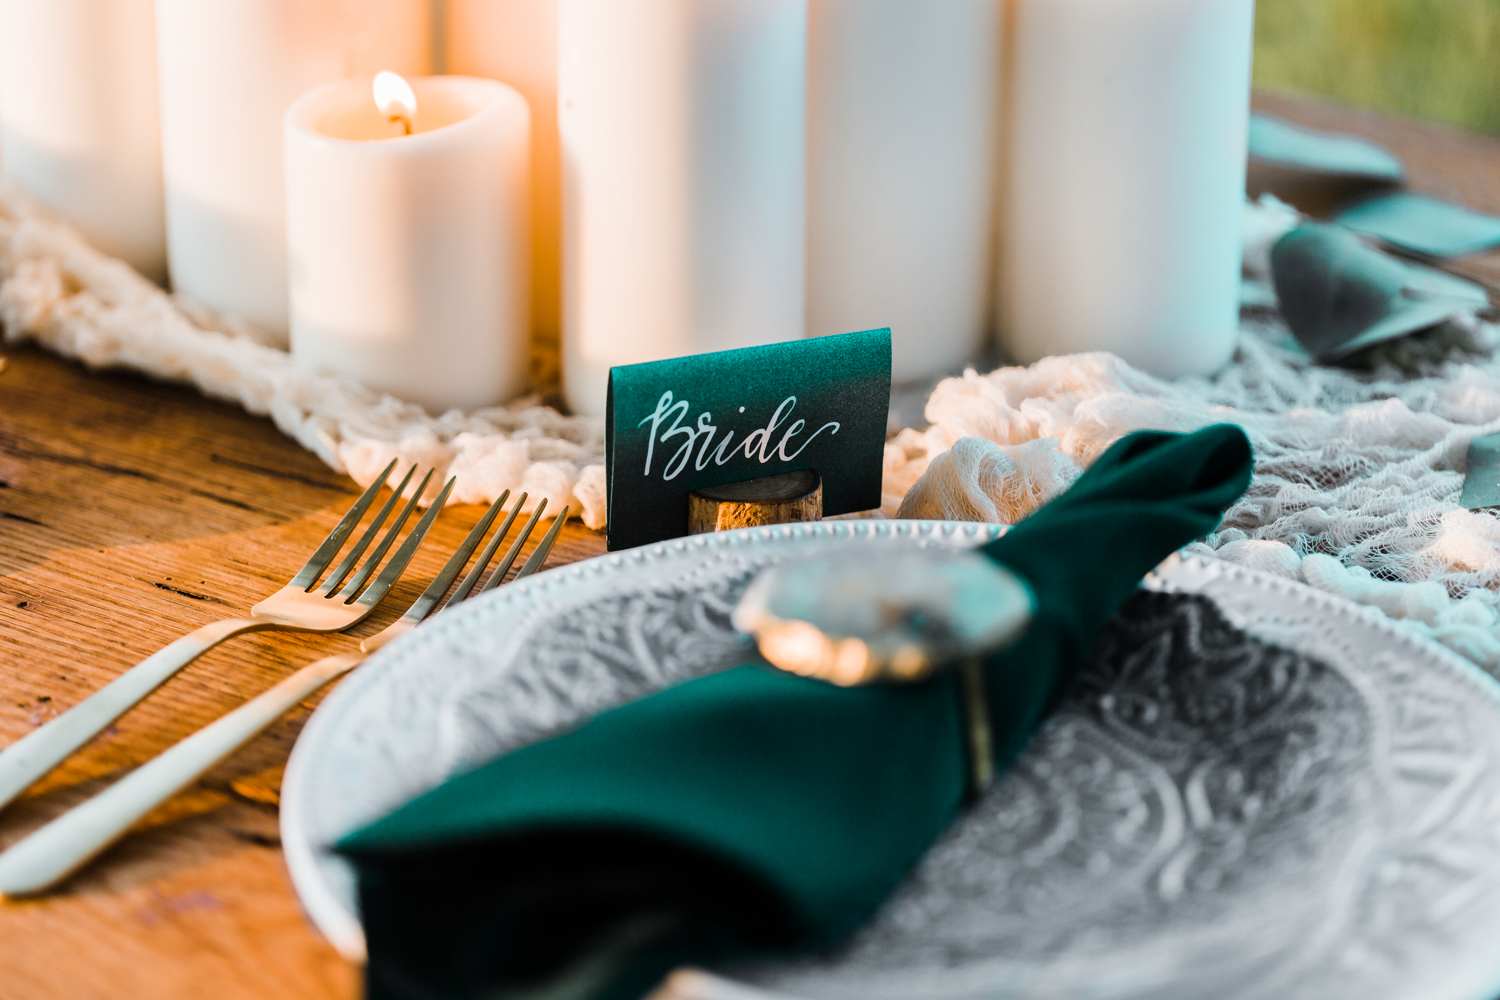 place card ideas - top calligrapher in maryland - EC Letters - wedding table settings ideas